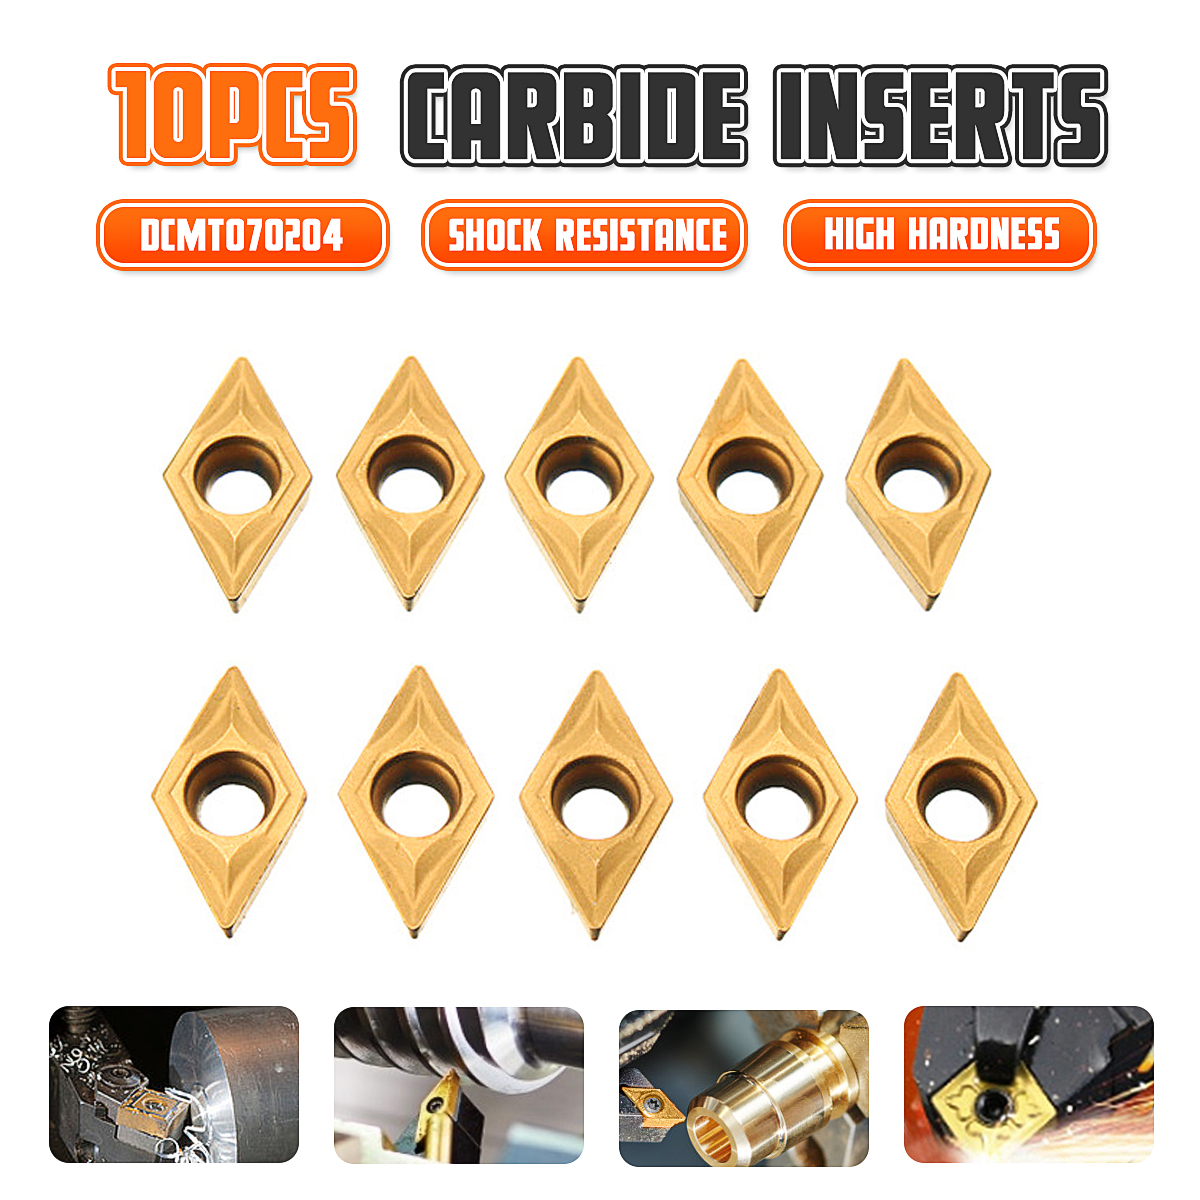 10PCS/Box DCMT070204 YBC251 Carbide Inserts For Lathe Turning Tool Boring Bar Hot Sale